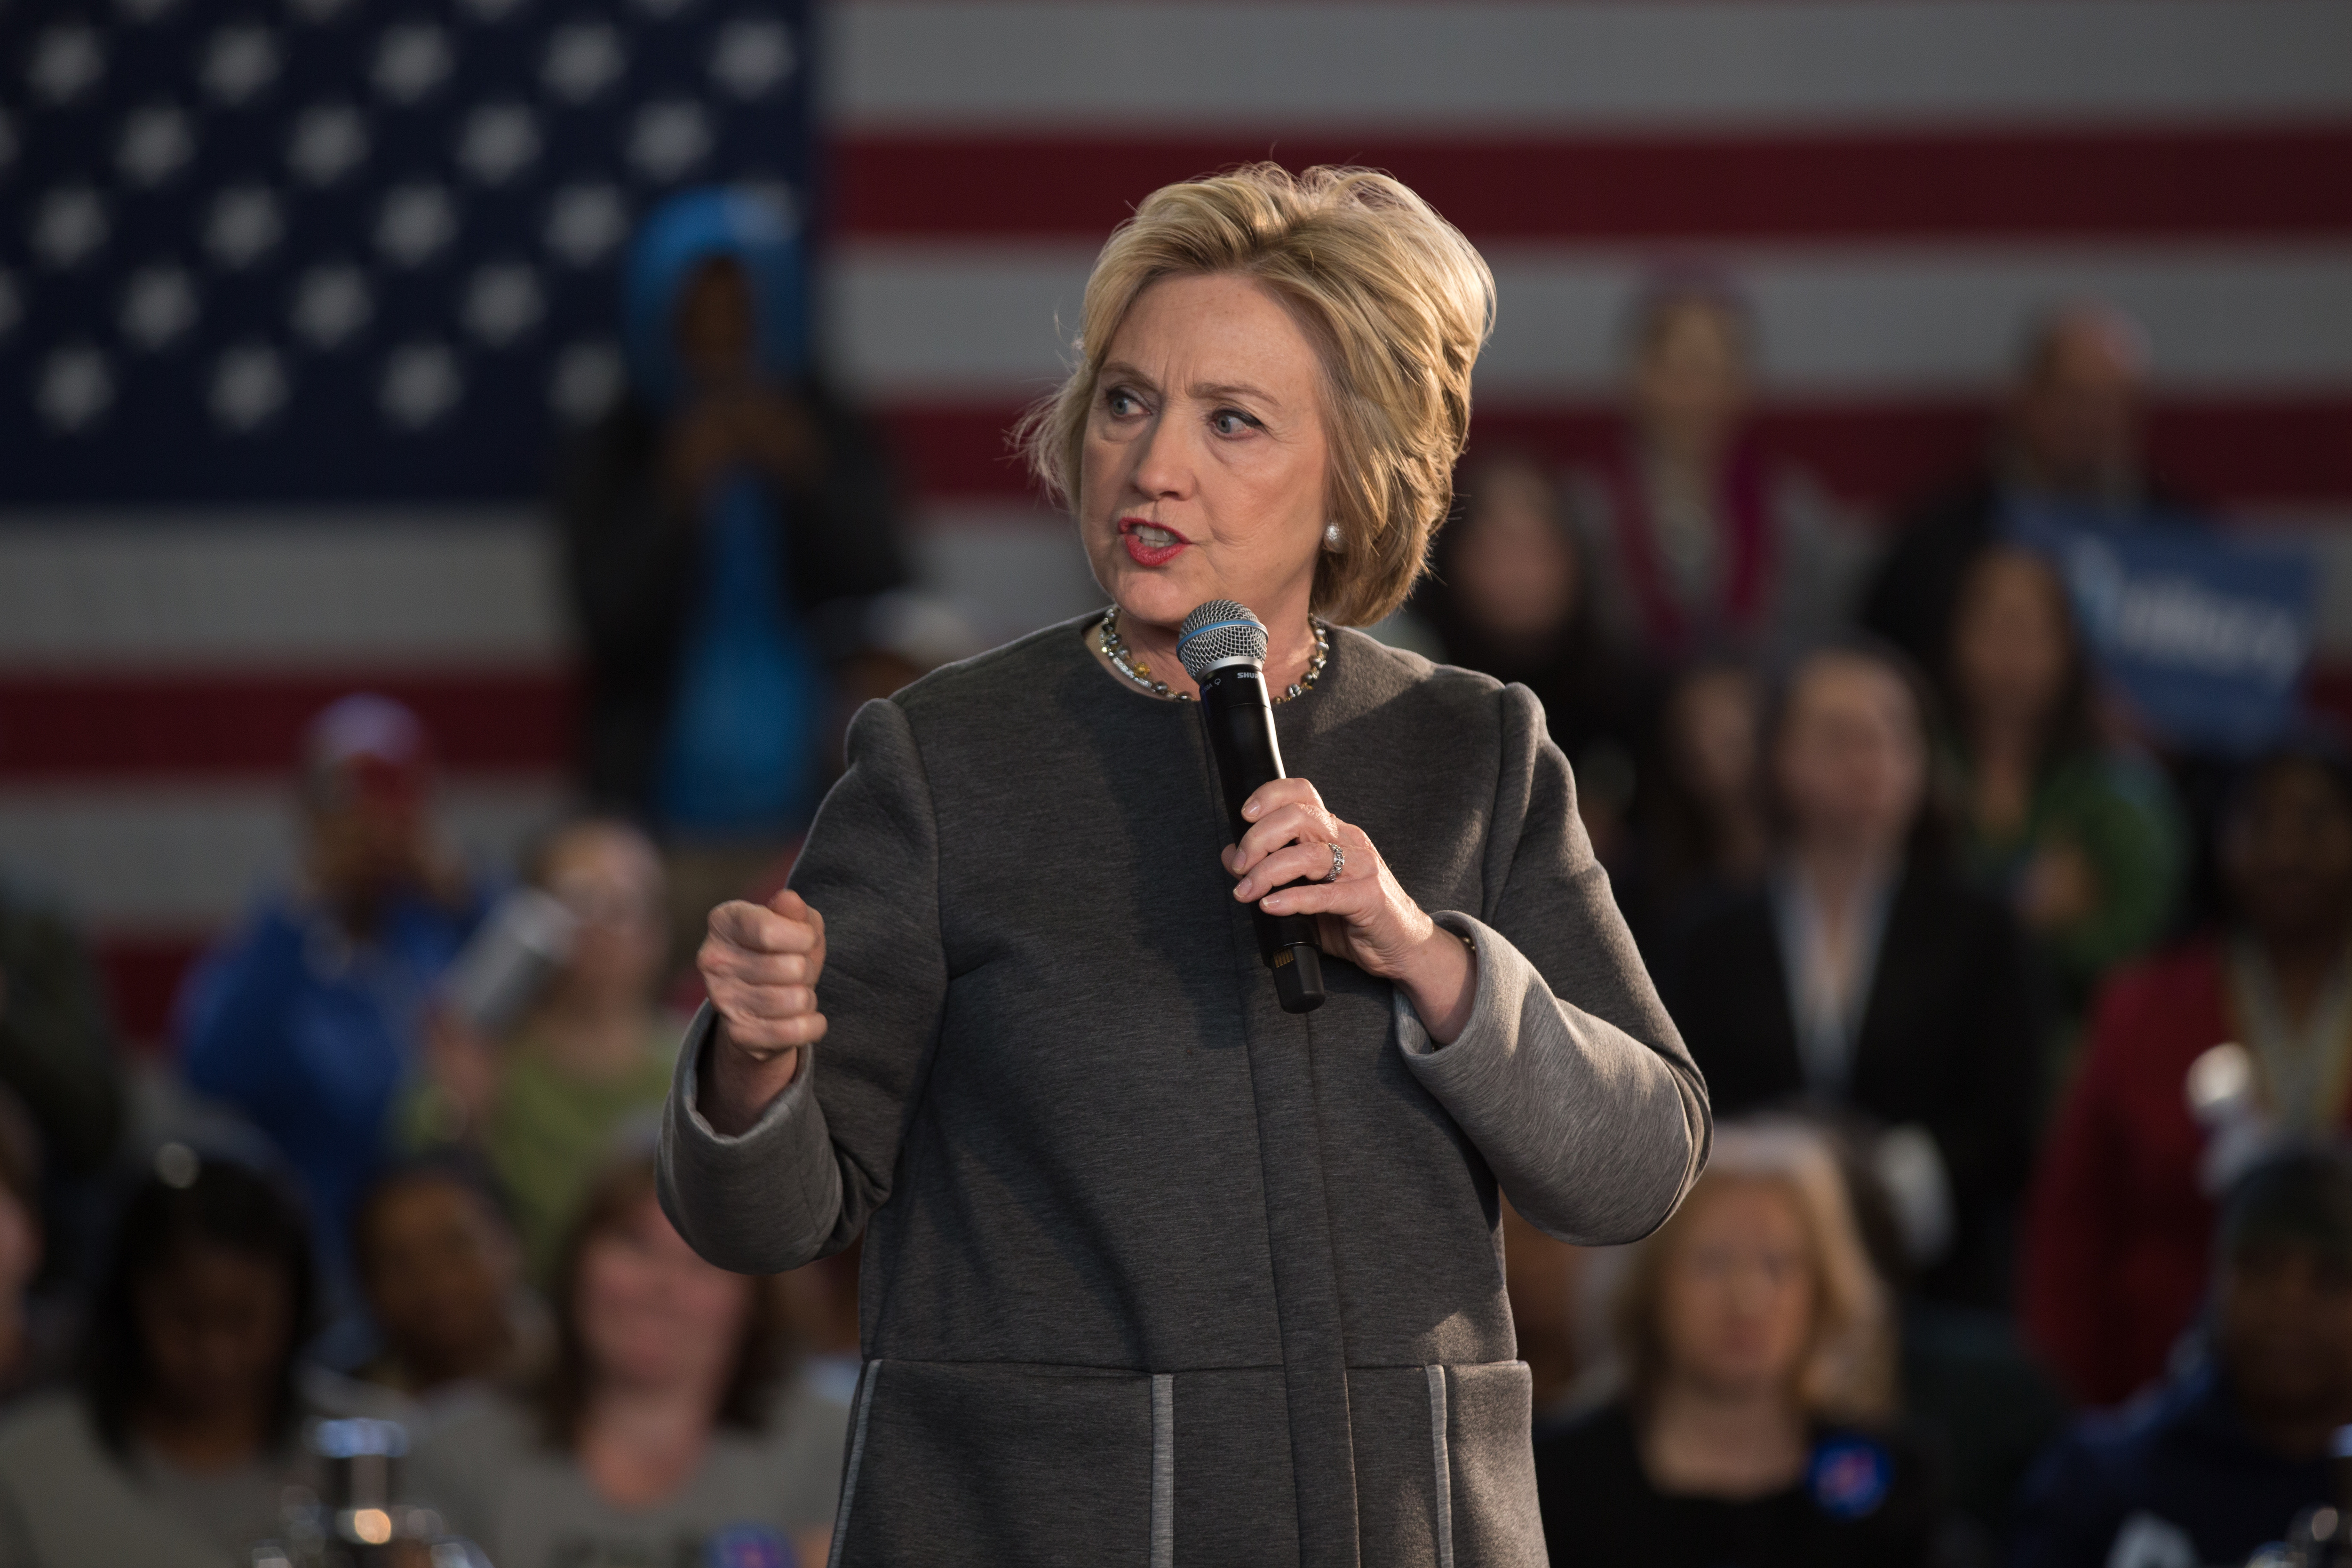 Hillary Clinton speaks at Hillary Town Hall with Congresswomen Yvette Clarke and First lady of New York City Chirlane McCray.